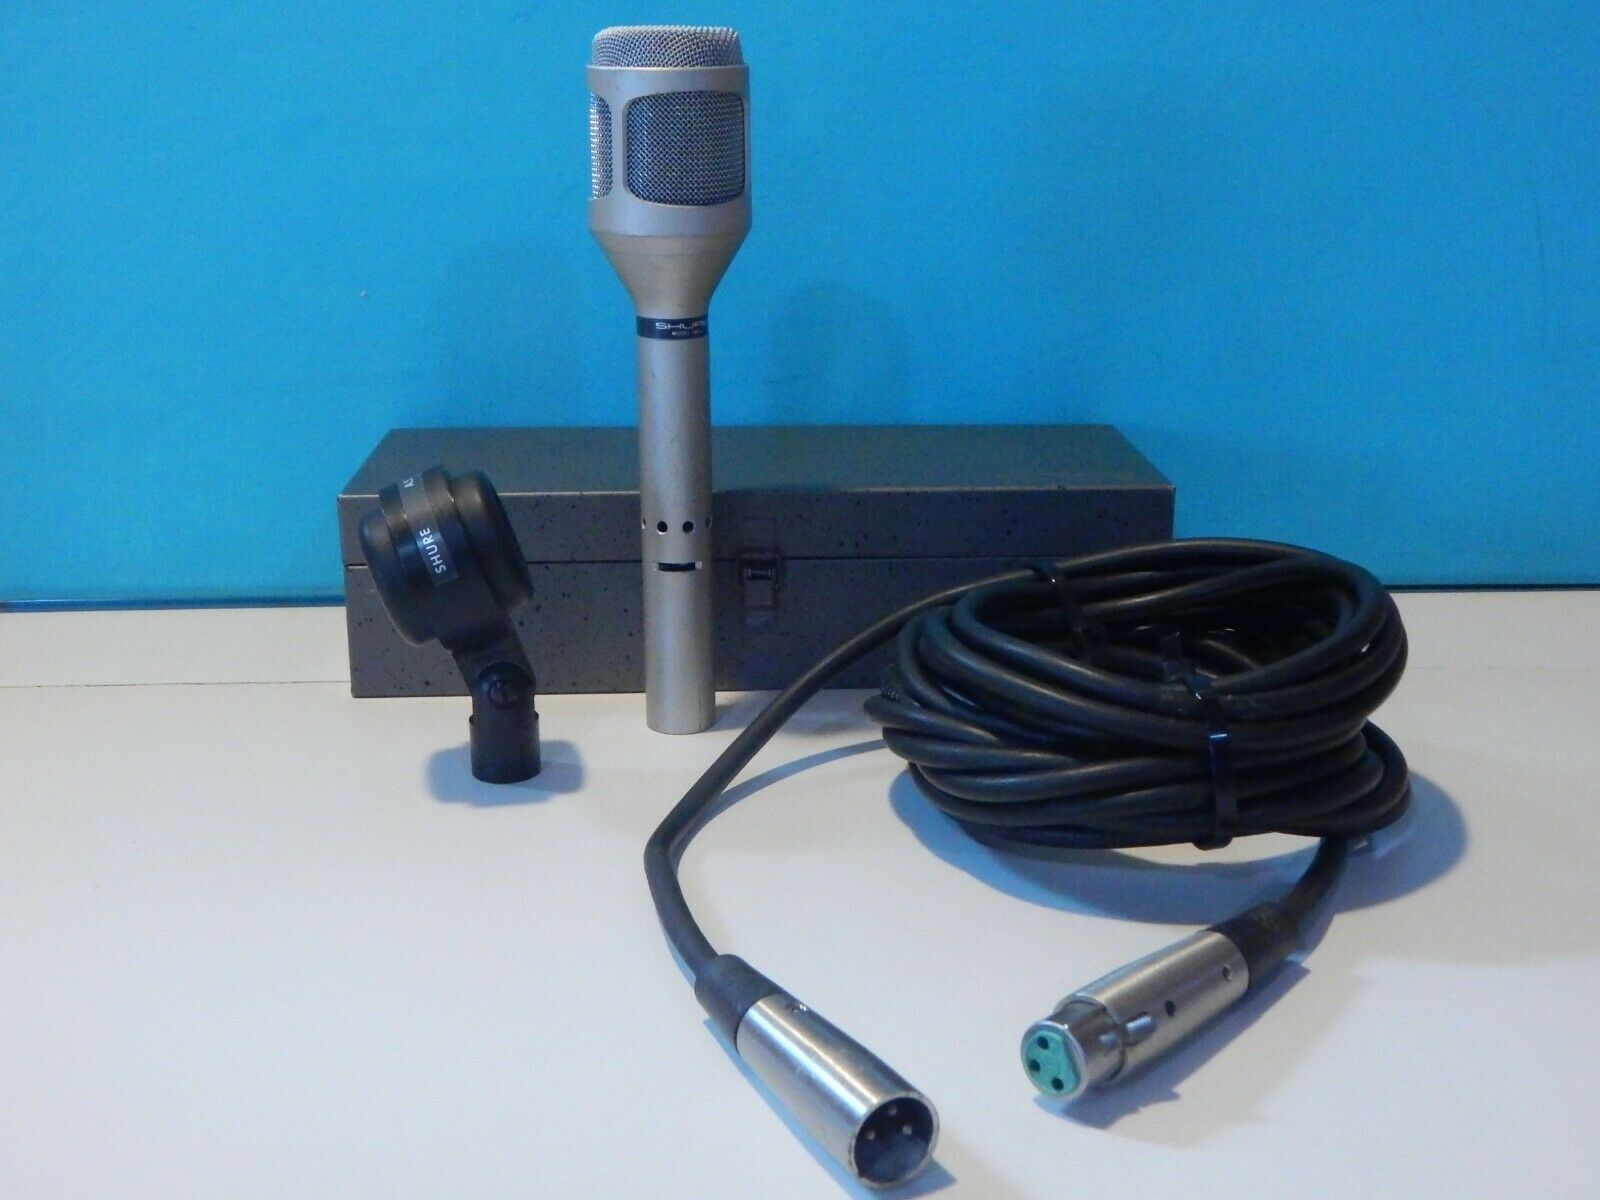 Vintage 1980S Shure SM54 Dynamic Unidirectional Studio Microphone & Accessories